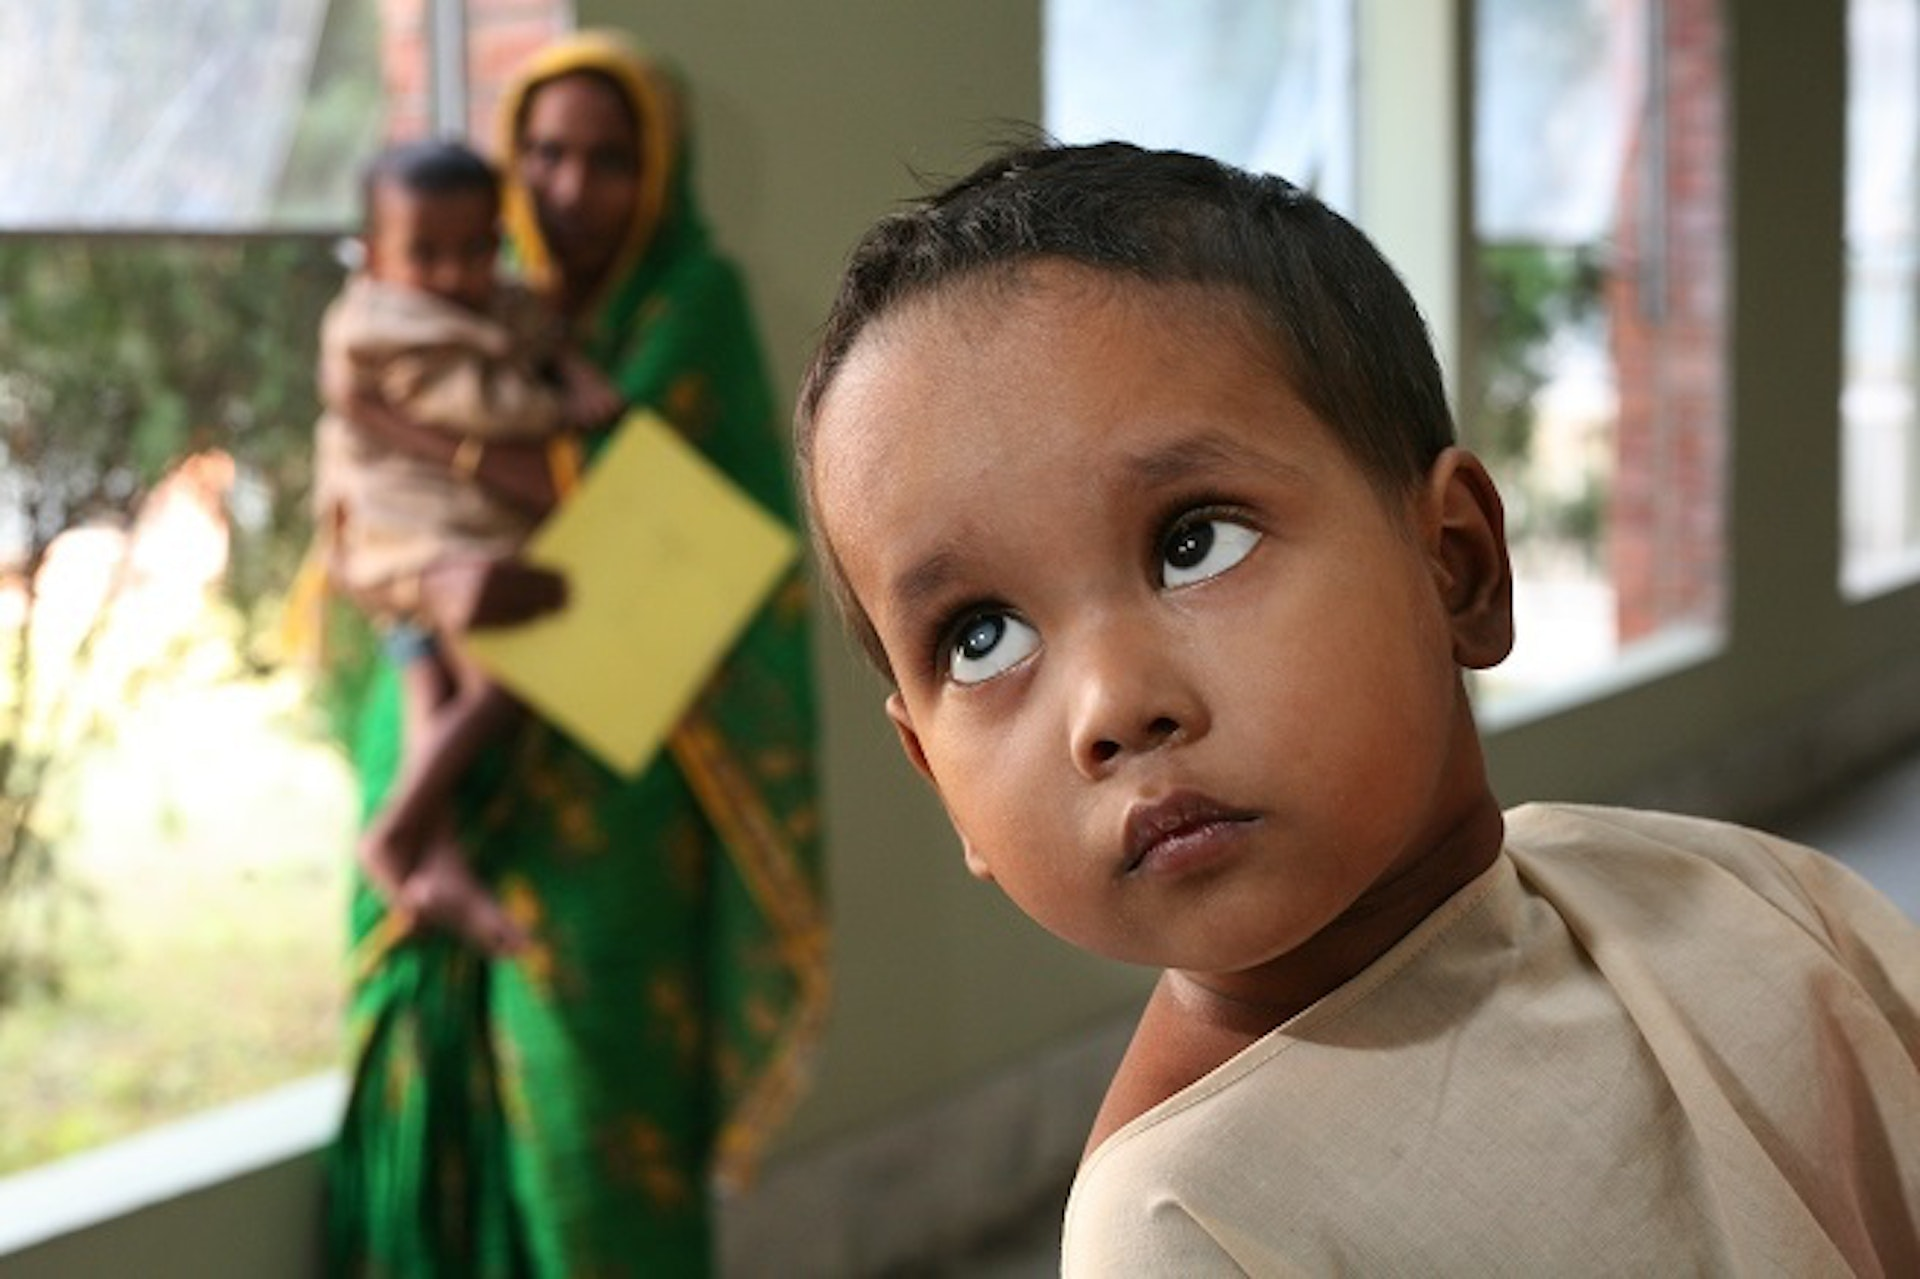 Paediatric cataract patient Halima from Bangladesh